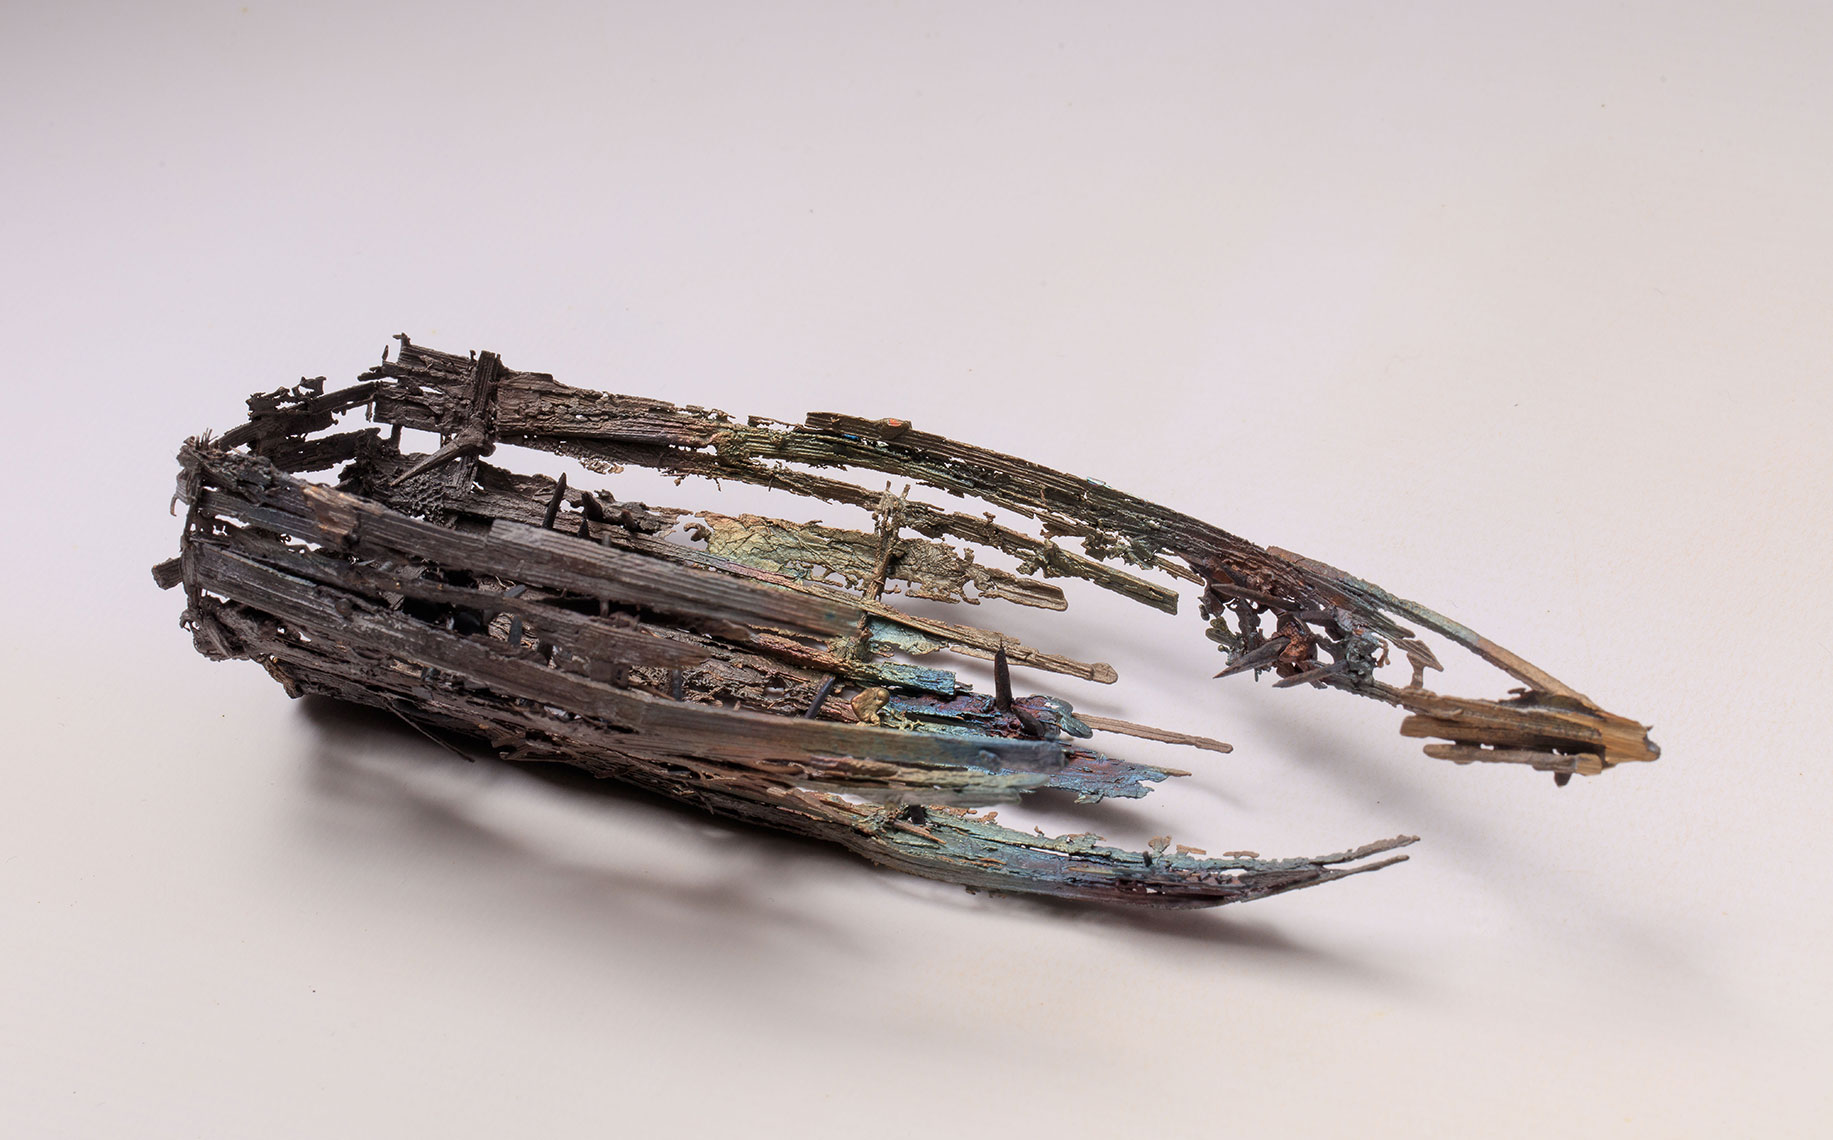 Fine art bronze statue of weathered boat from Dungeoness